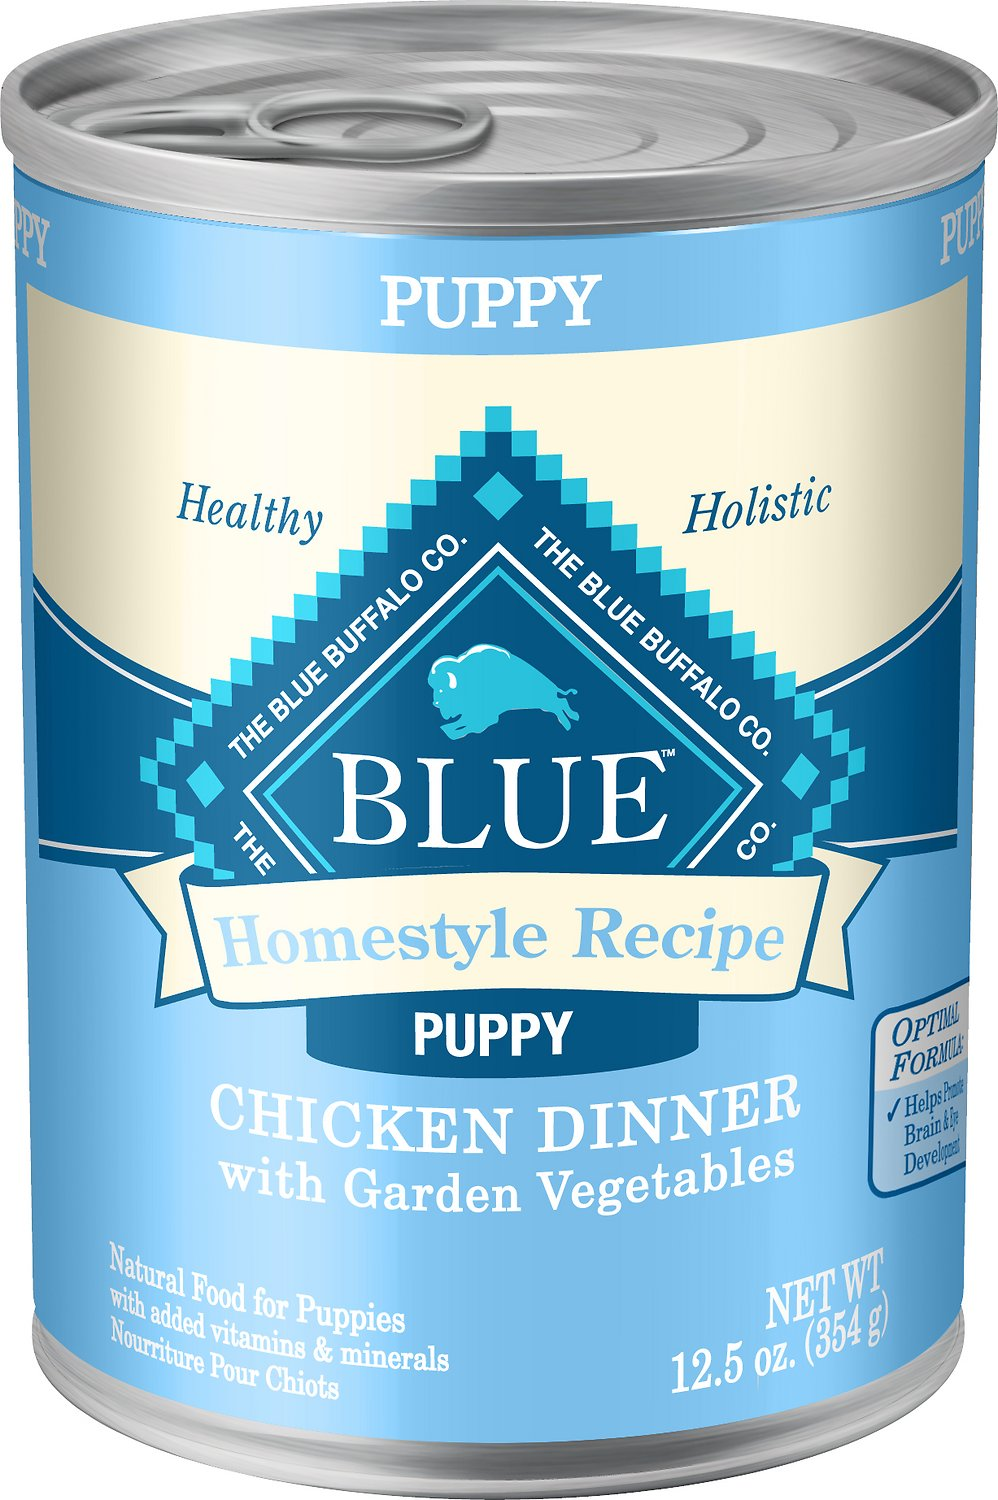 Blue Buffalo Homestyle Recipe Puppy Chicken Dinner with Garden Vegetables Canned Dog Food Image